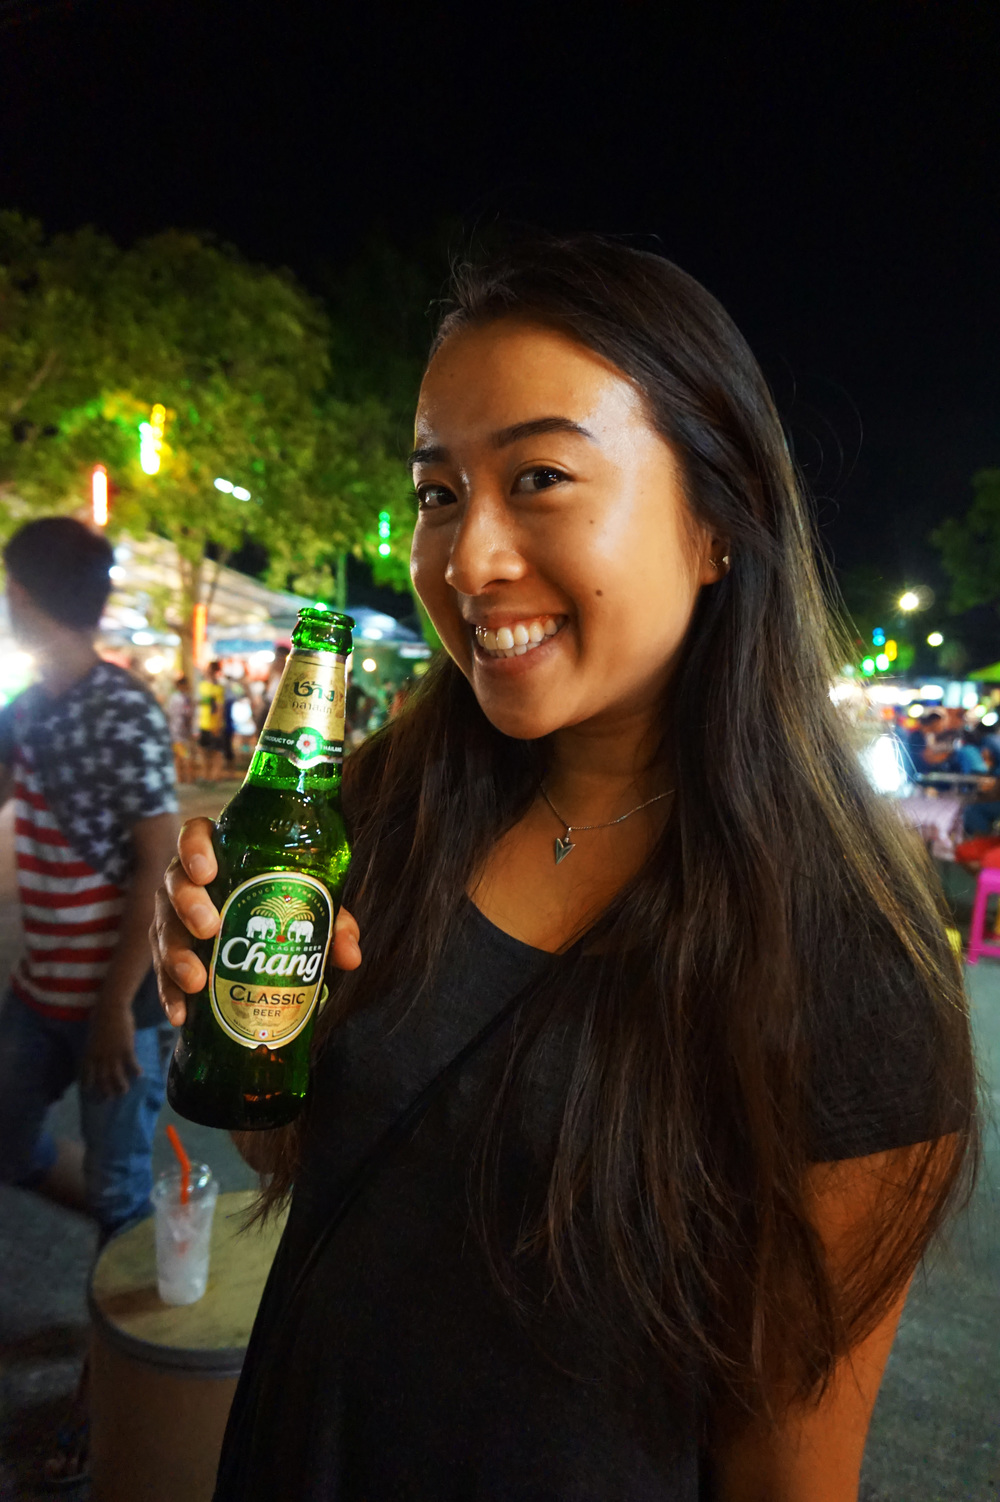 """Chang"" means ""elephant"" in Thai, which is why it's featured on all of the beer bottles with two elephants"